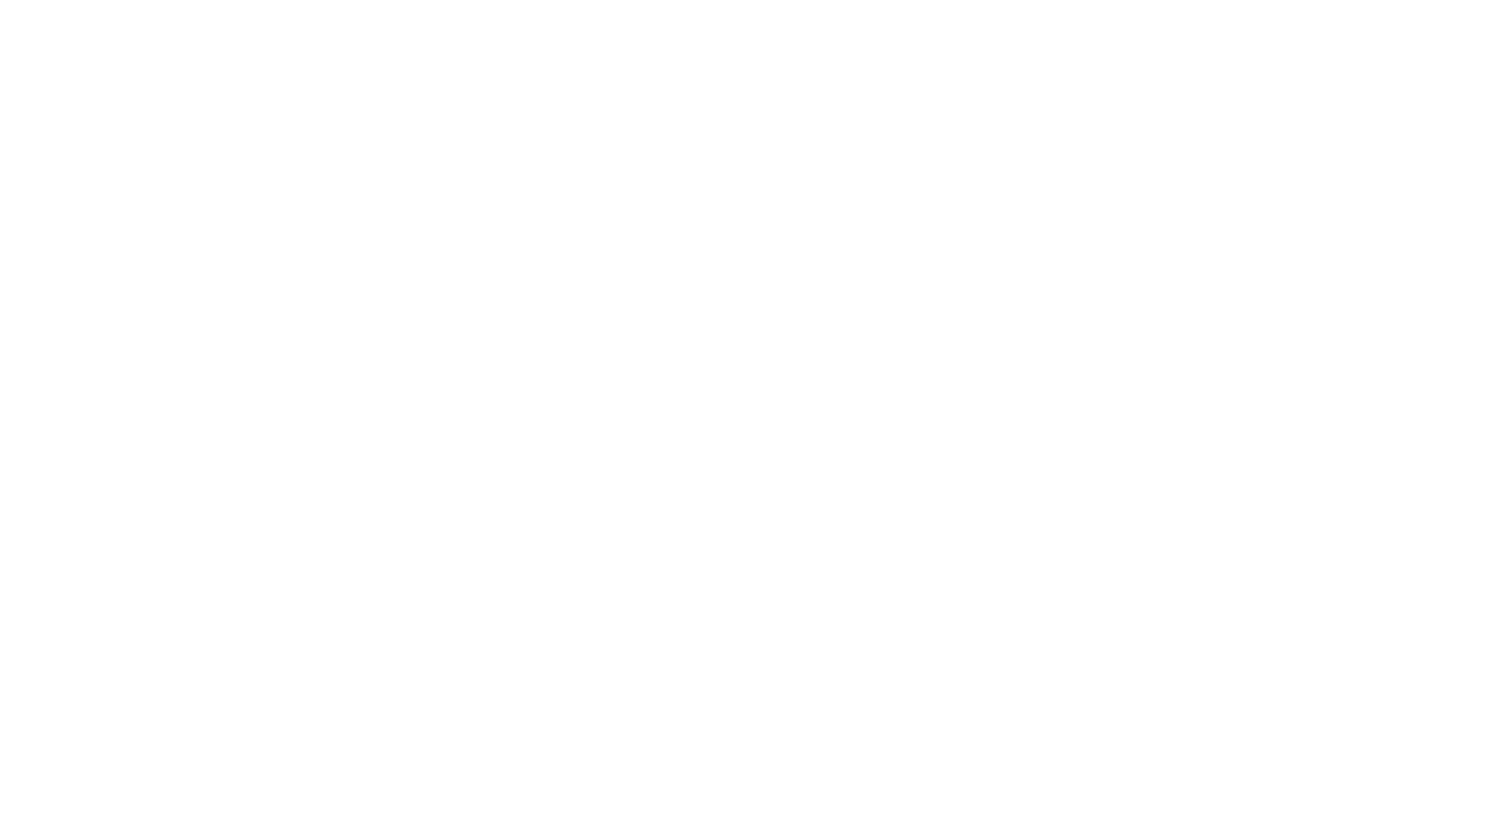 Fiscus Capital Pty Ltd